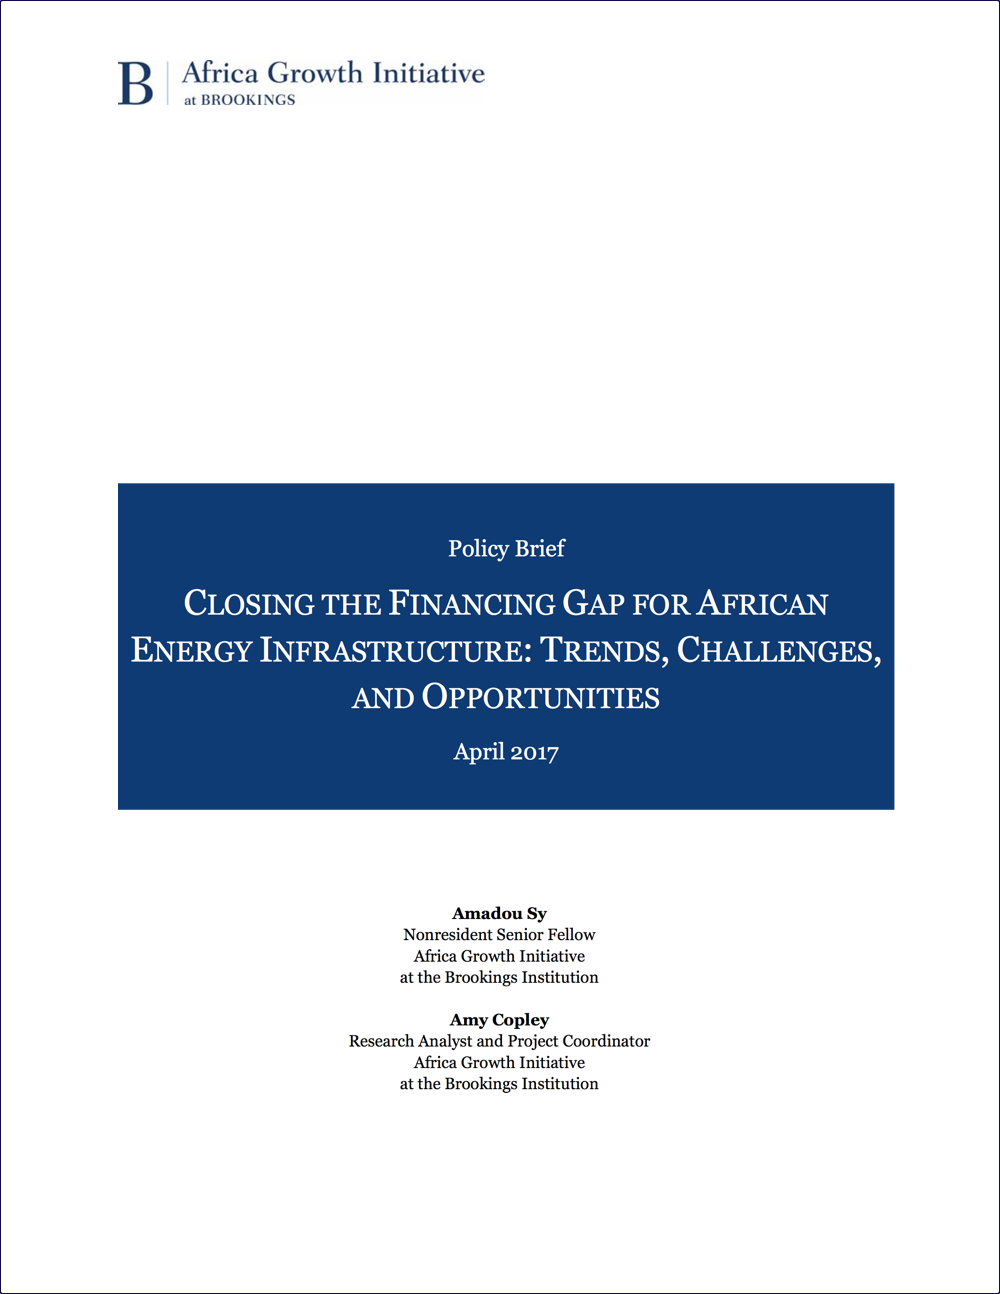 Closing The Financing Gap for African Energy Infrastructure